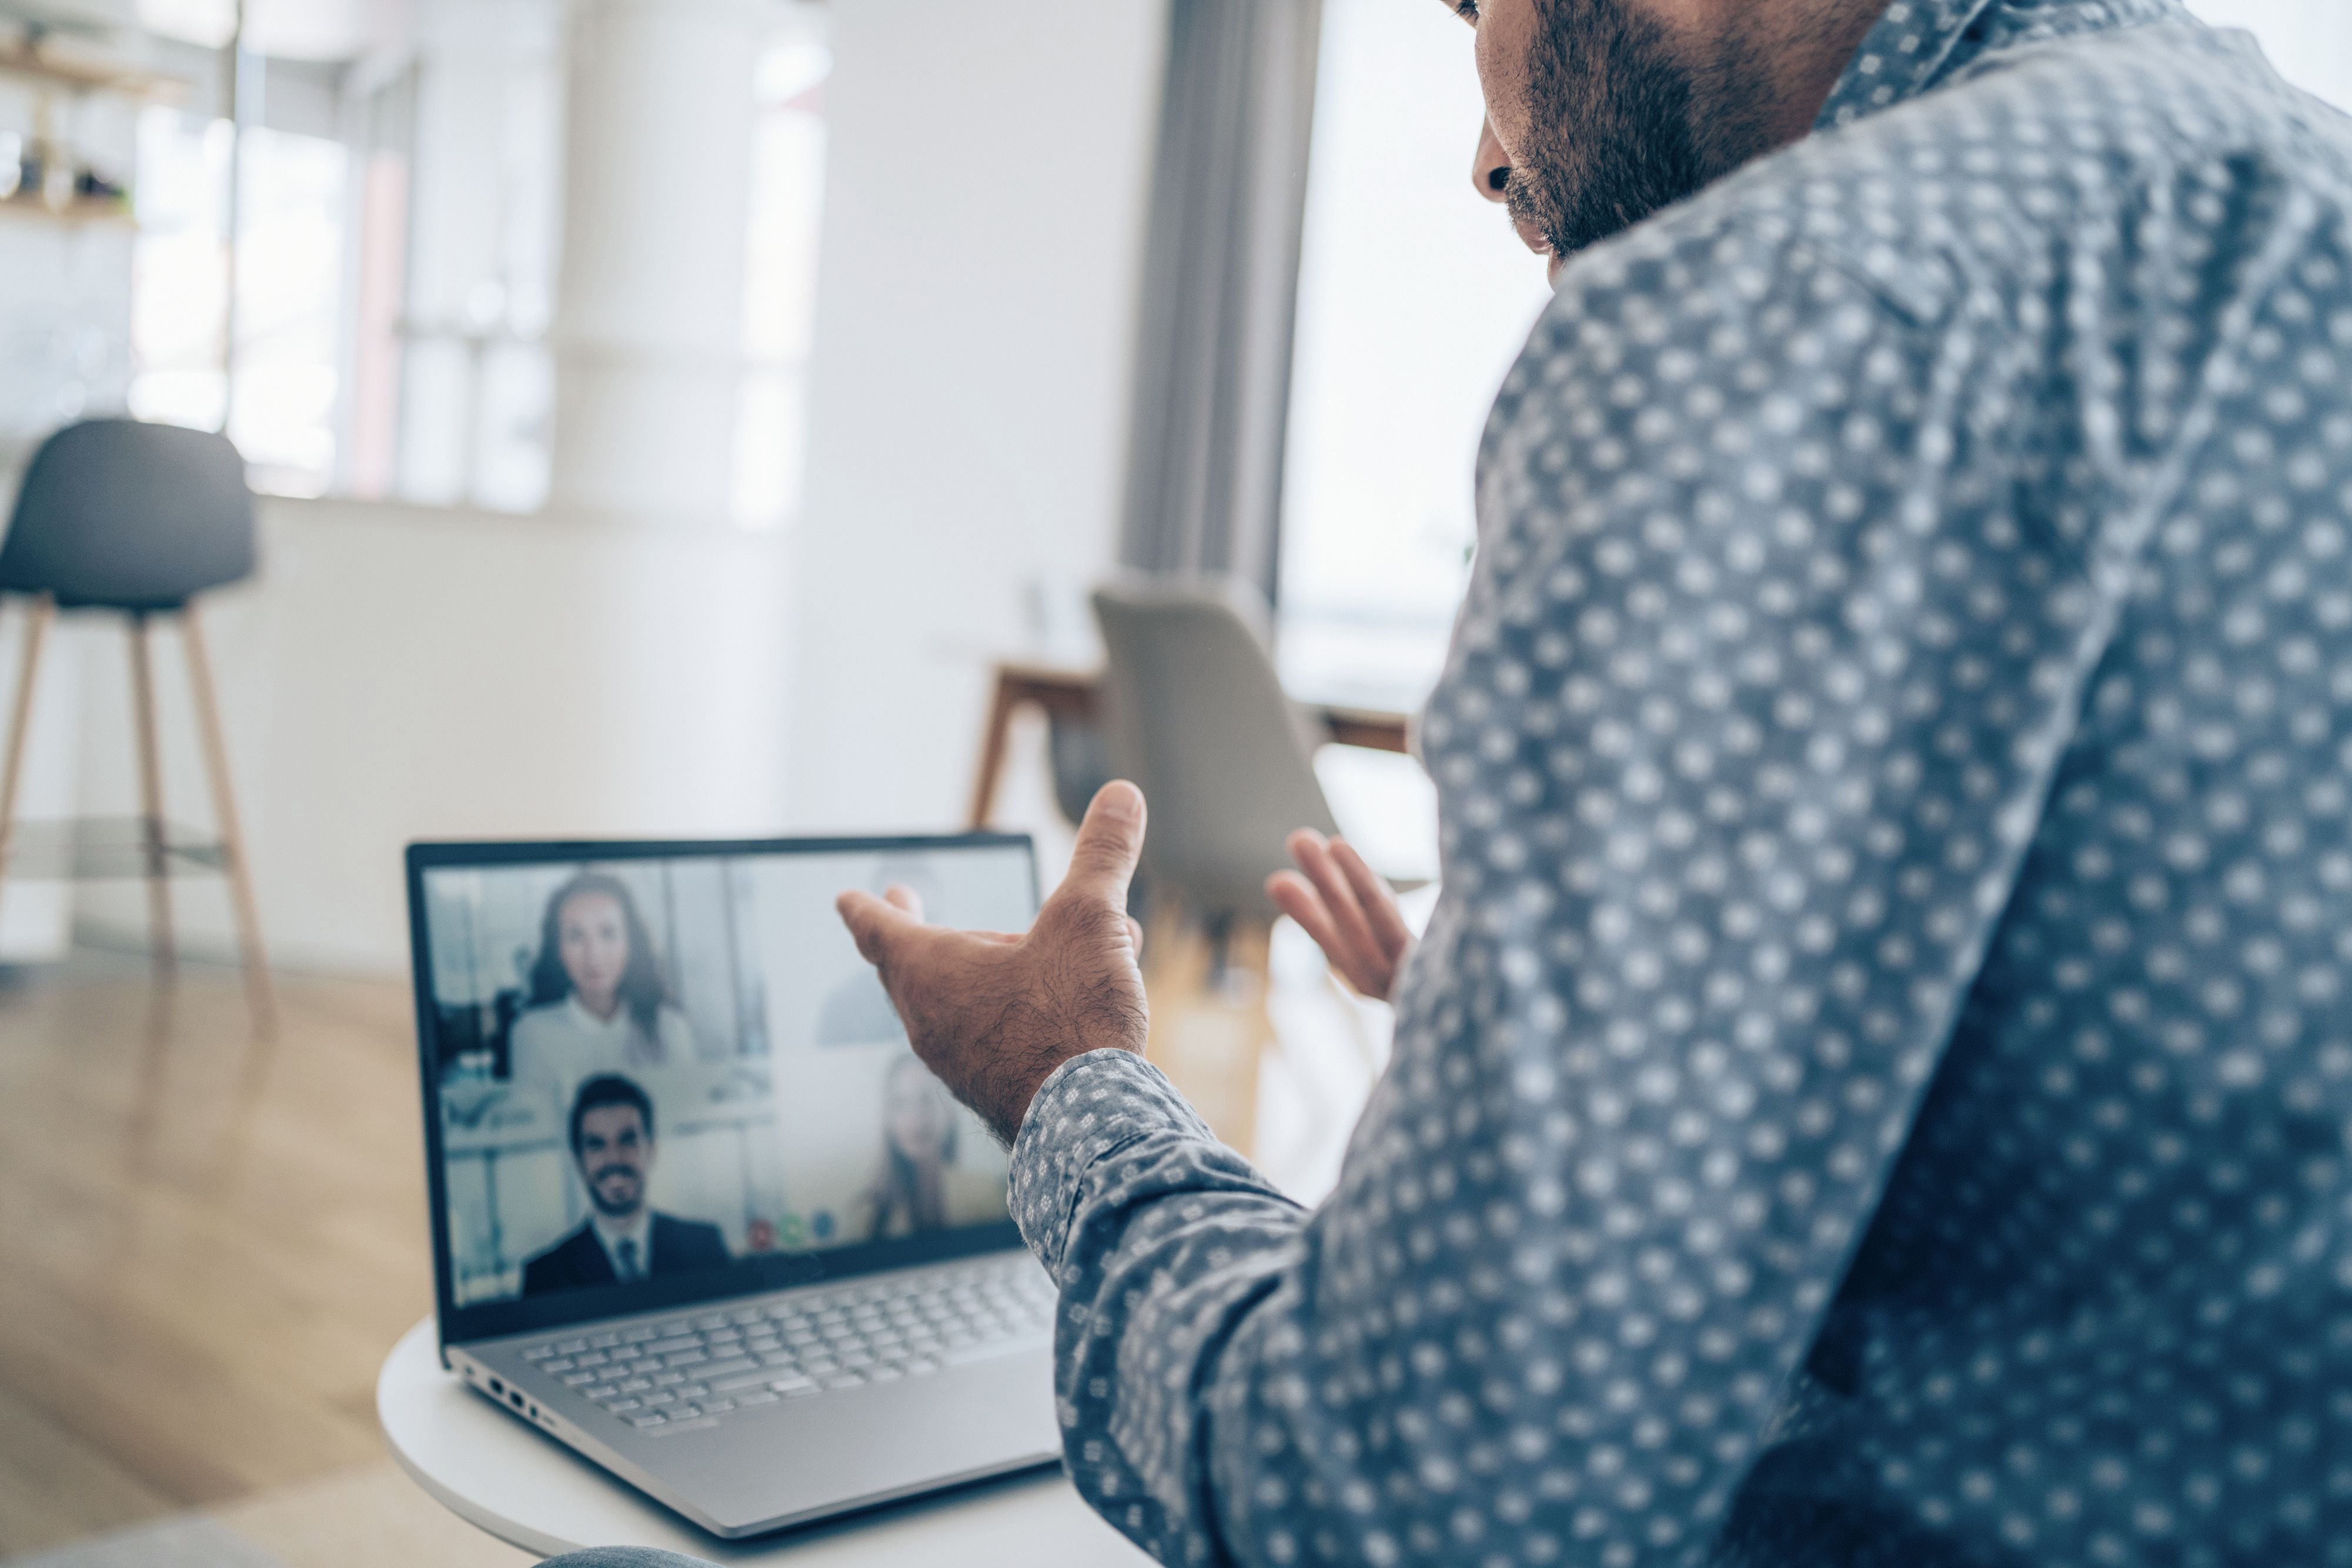 Gentleman in a video call conference